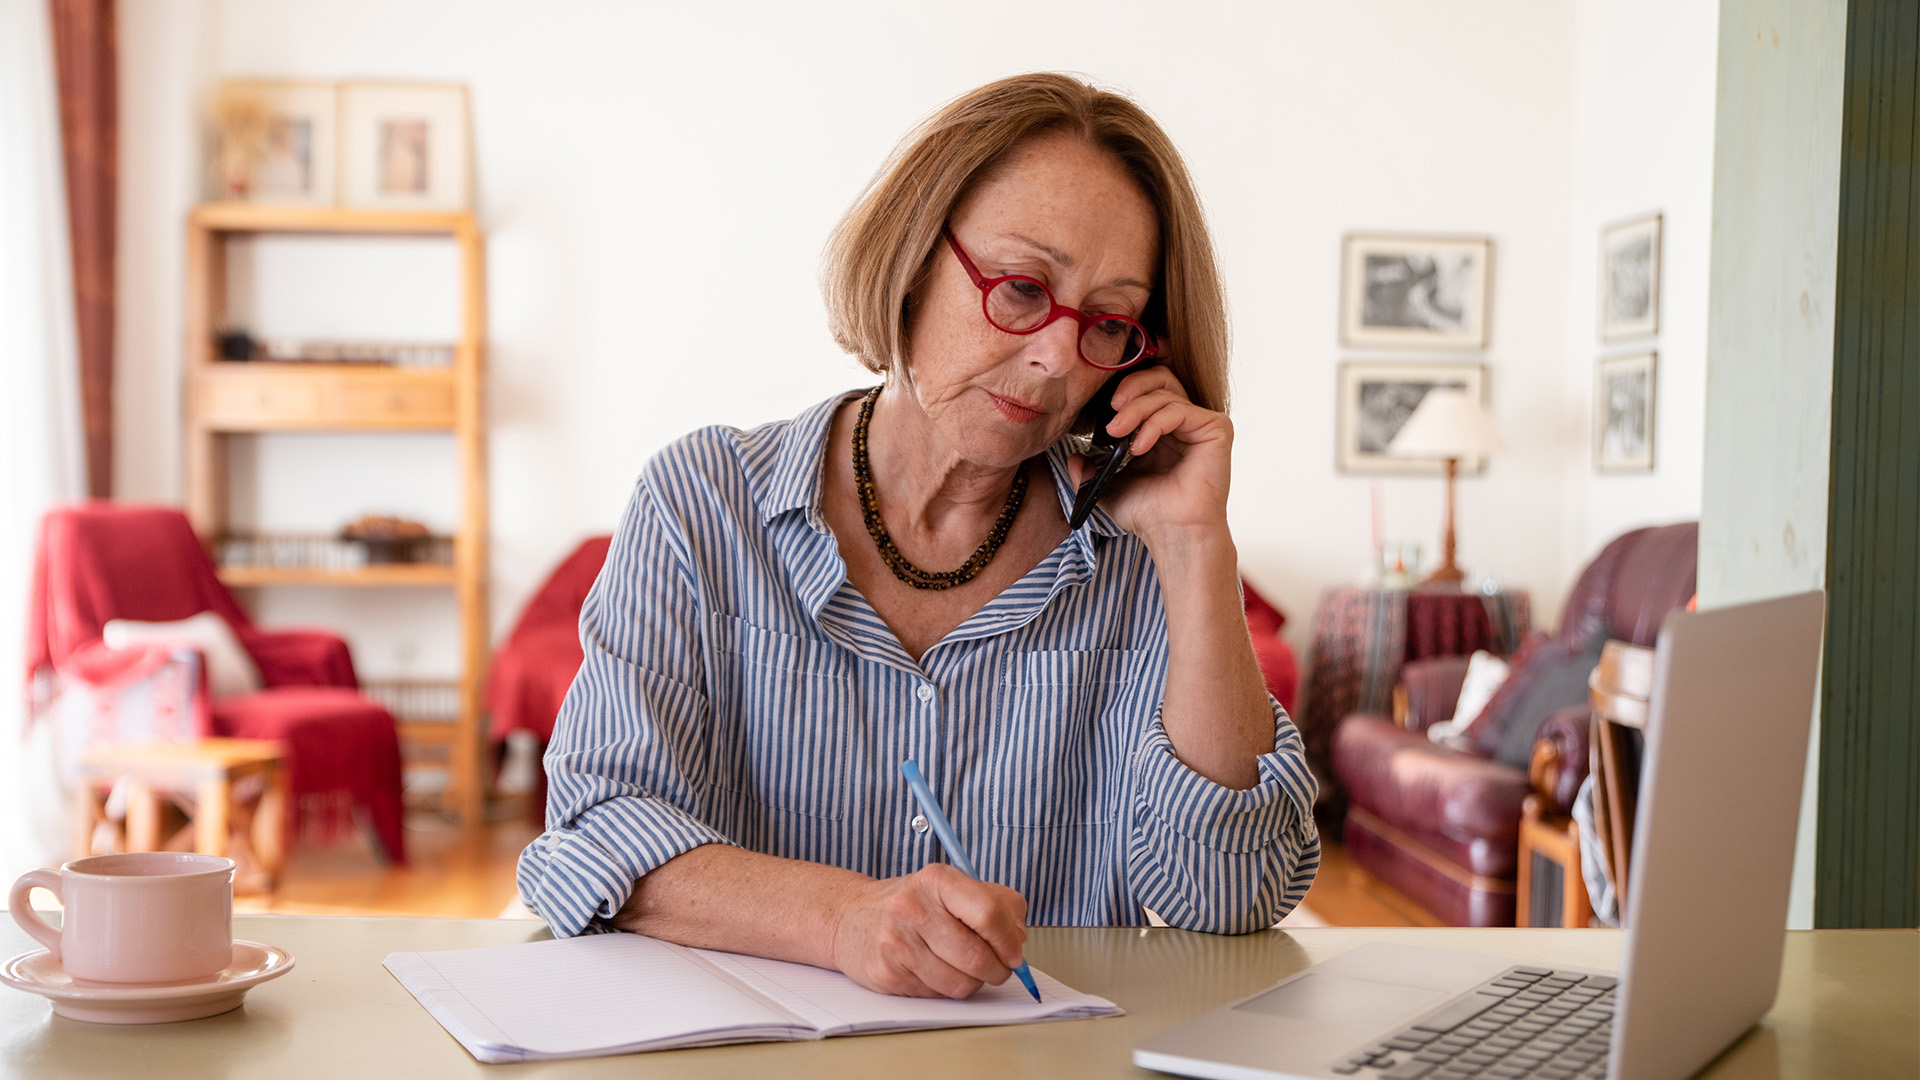 PTH 1920_0008_middle-age-senior-woman-working-at-home-using-comp-4N7F464